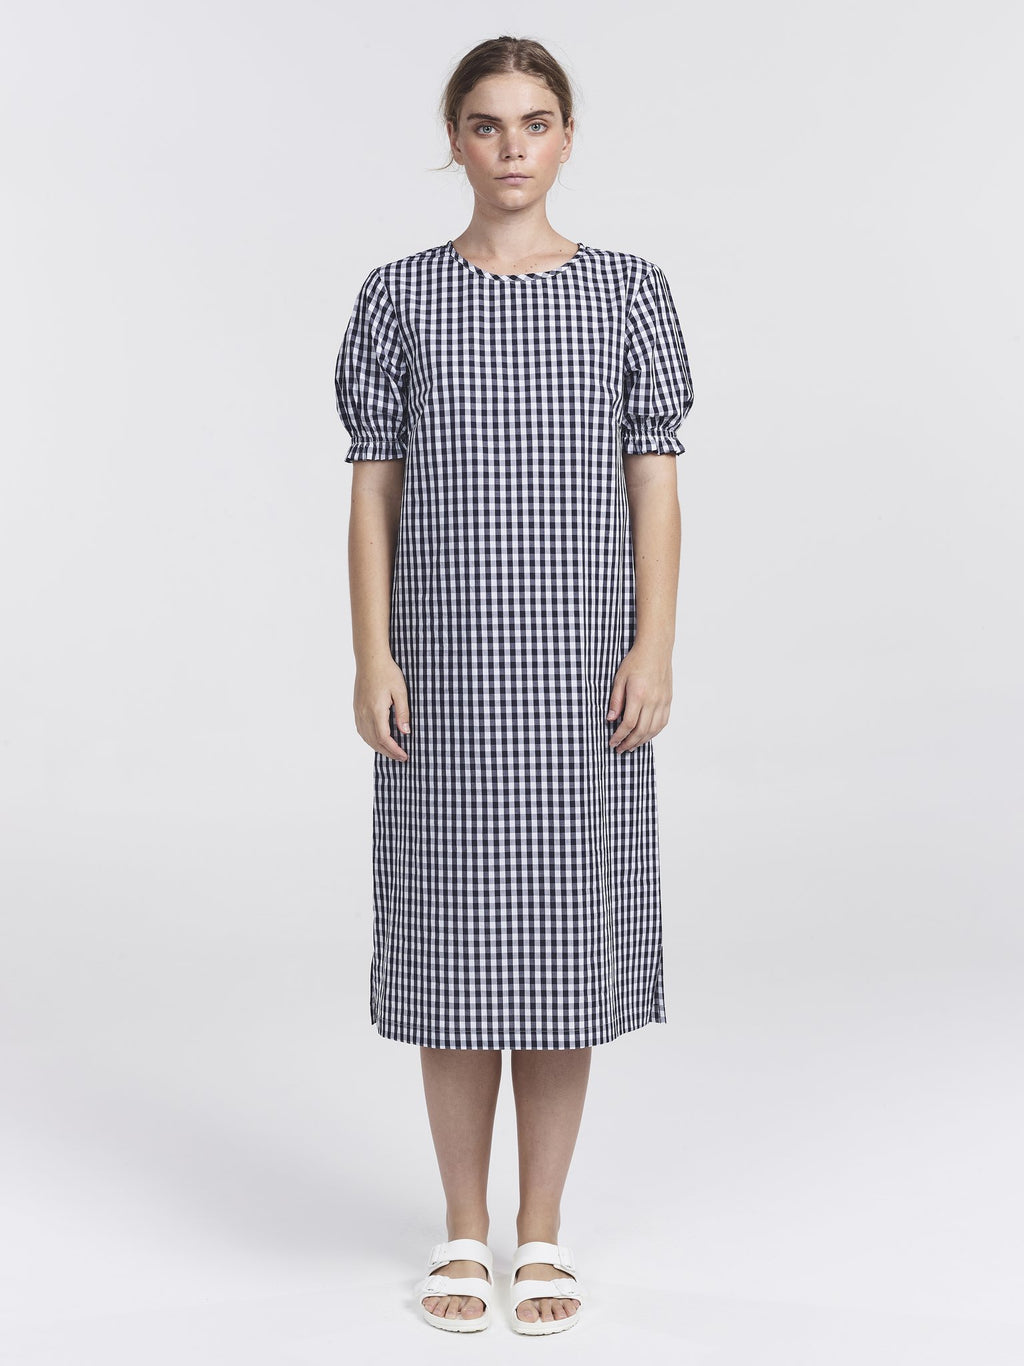 Clementine Dress-Navy Check